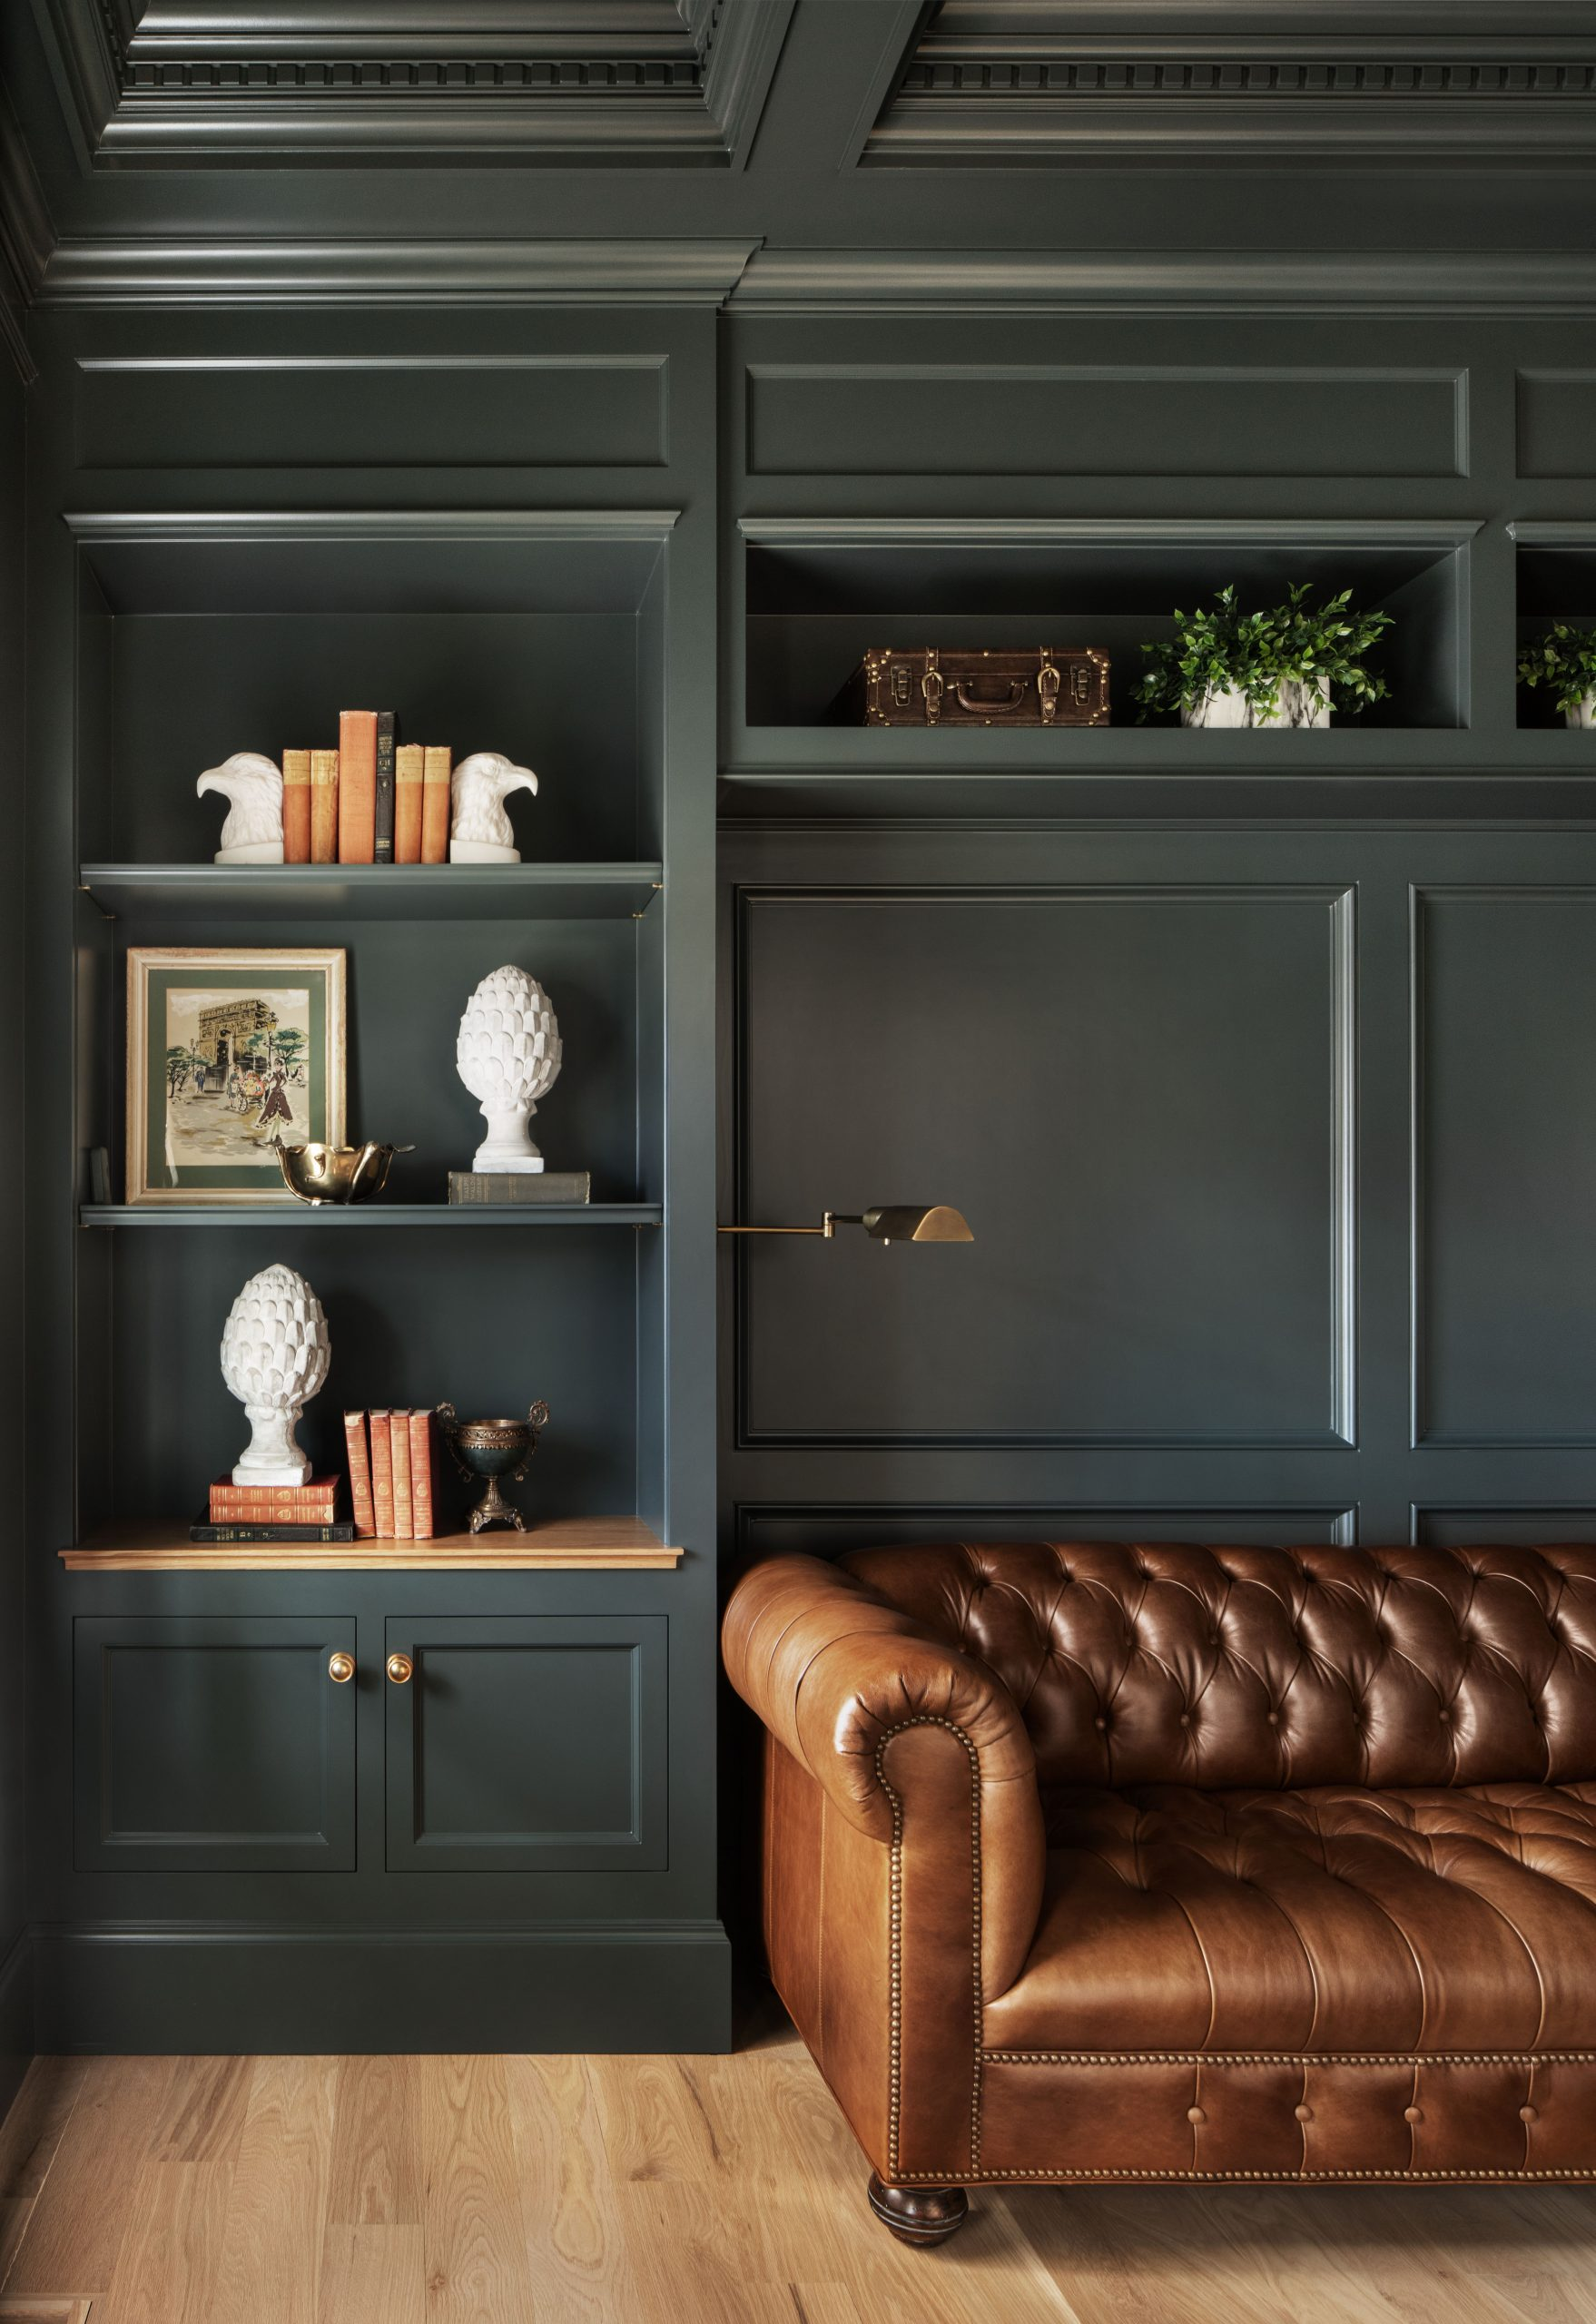 Which comes first—the custom cabinets for your home or the furniture? Did you choose green cabinets to match the couch that belongs in the room or are you bringing in the rich leather couch because you know it'll pair perfectly with those deep green cabinets?